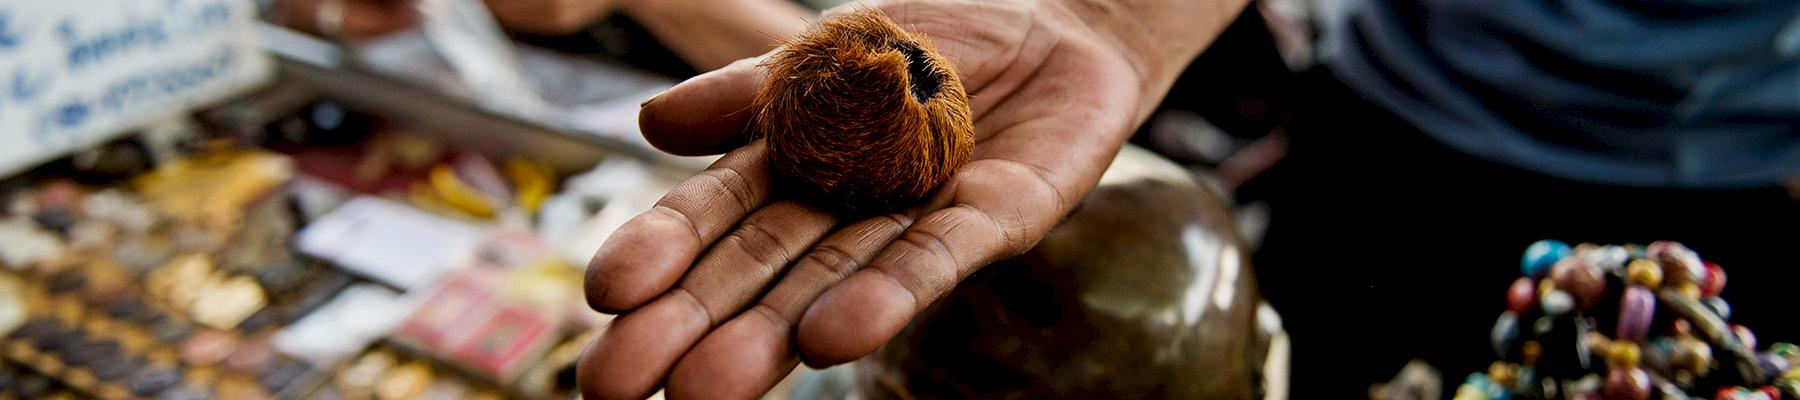 A tiger's testicle, of dubious authenticity, on sale at Tha Phra Chan market, Bangkok, Thailand © James Morgan / WWF